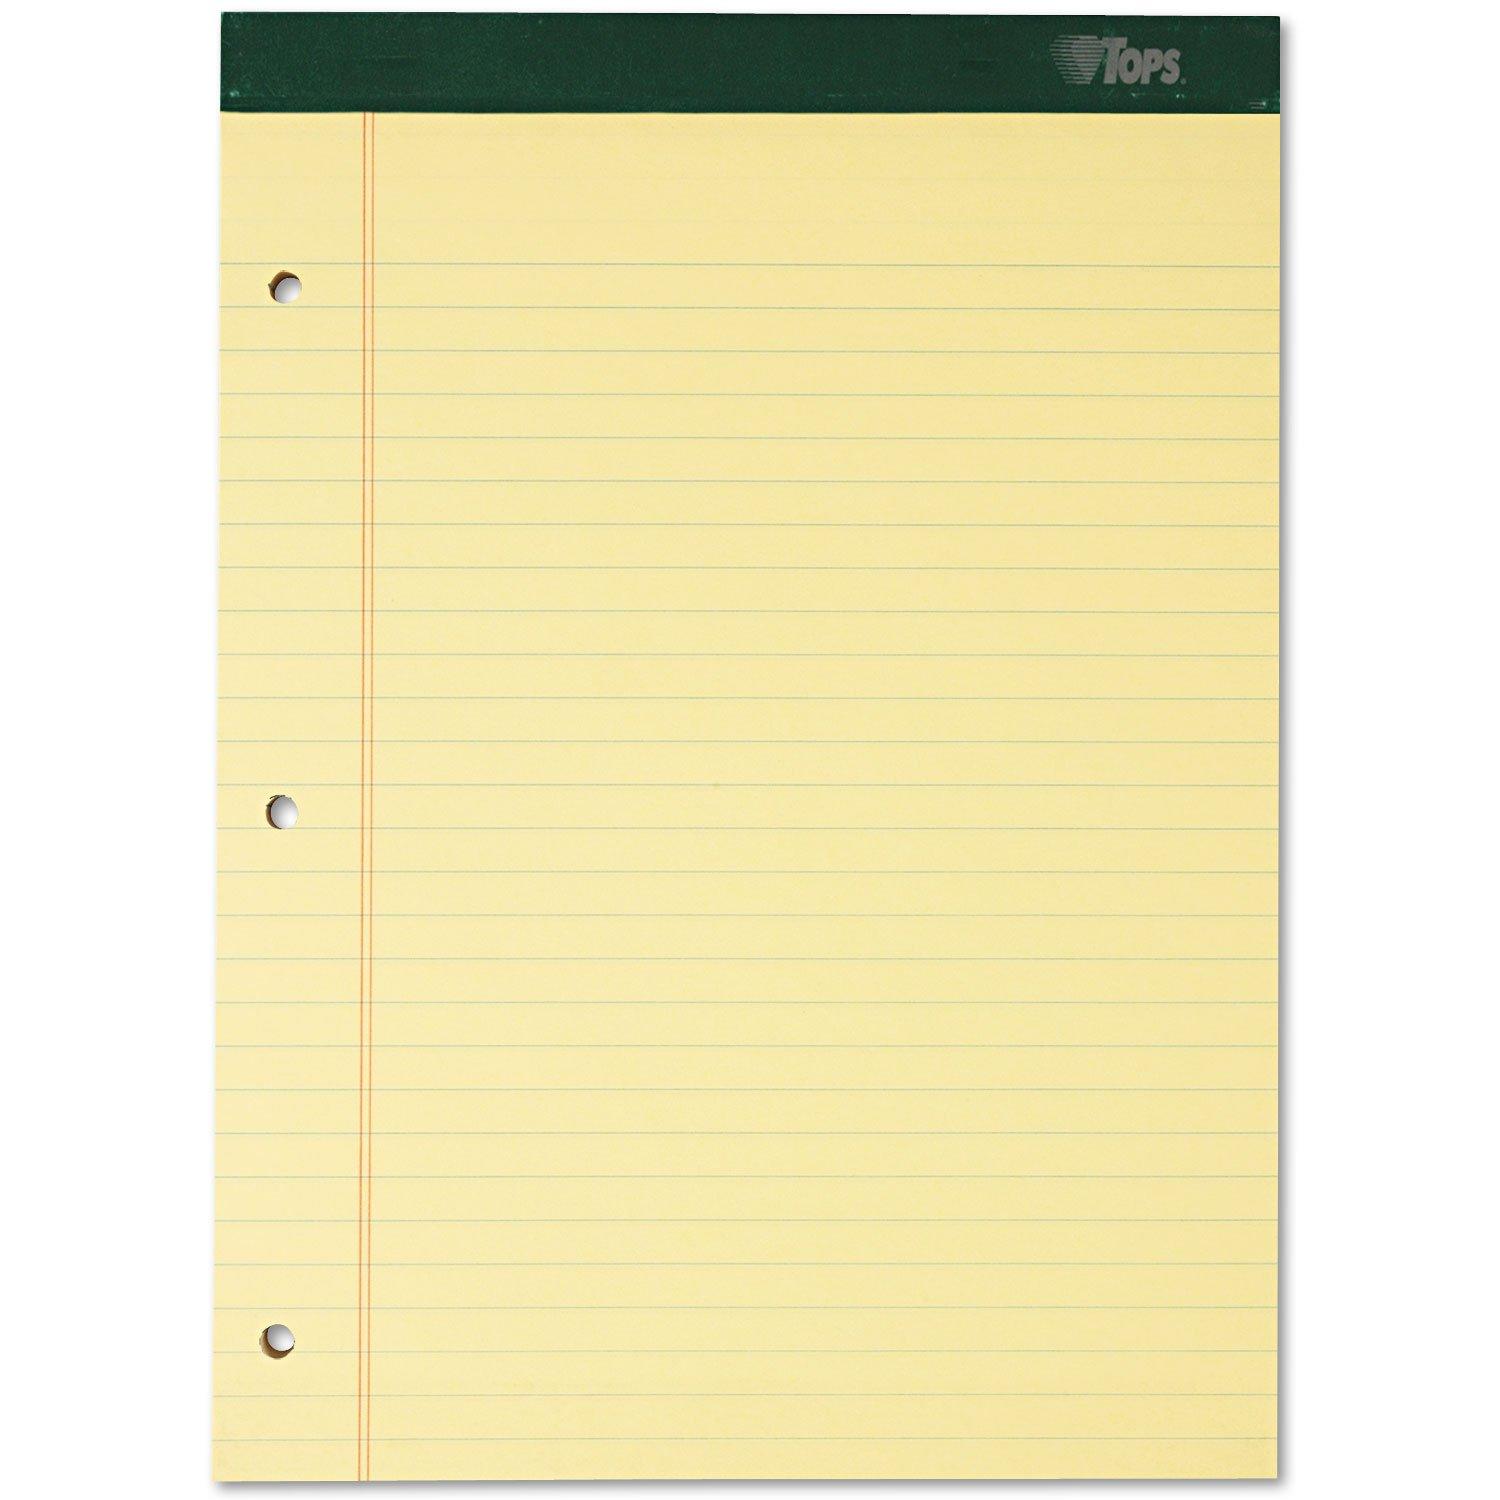 TOPS 63387 Notepads,3HP,Wide Rule,100 Shts,8-1/2''x11-3/4'',6/PK,Canary